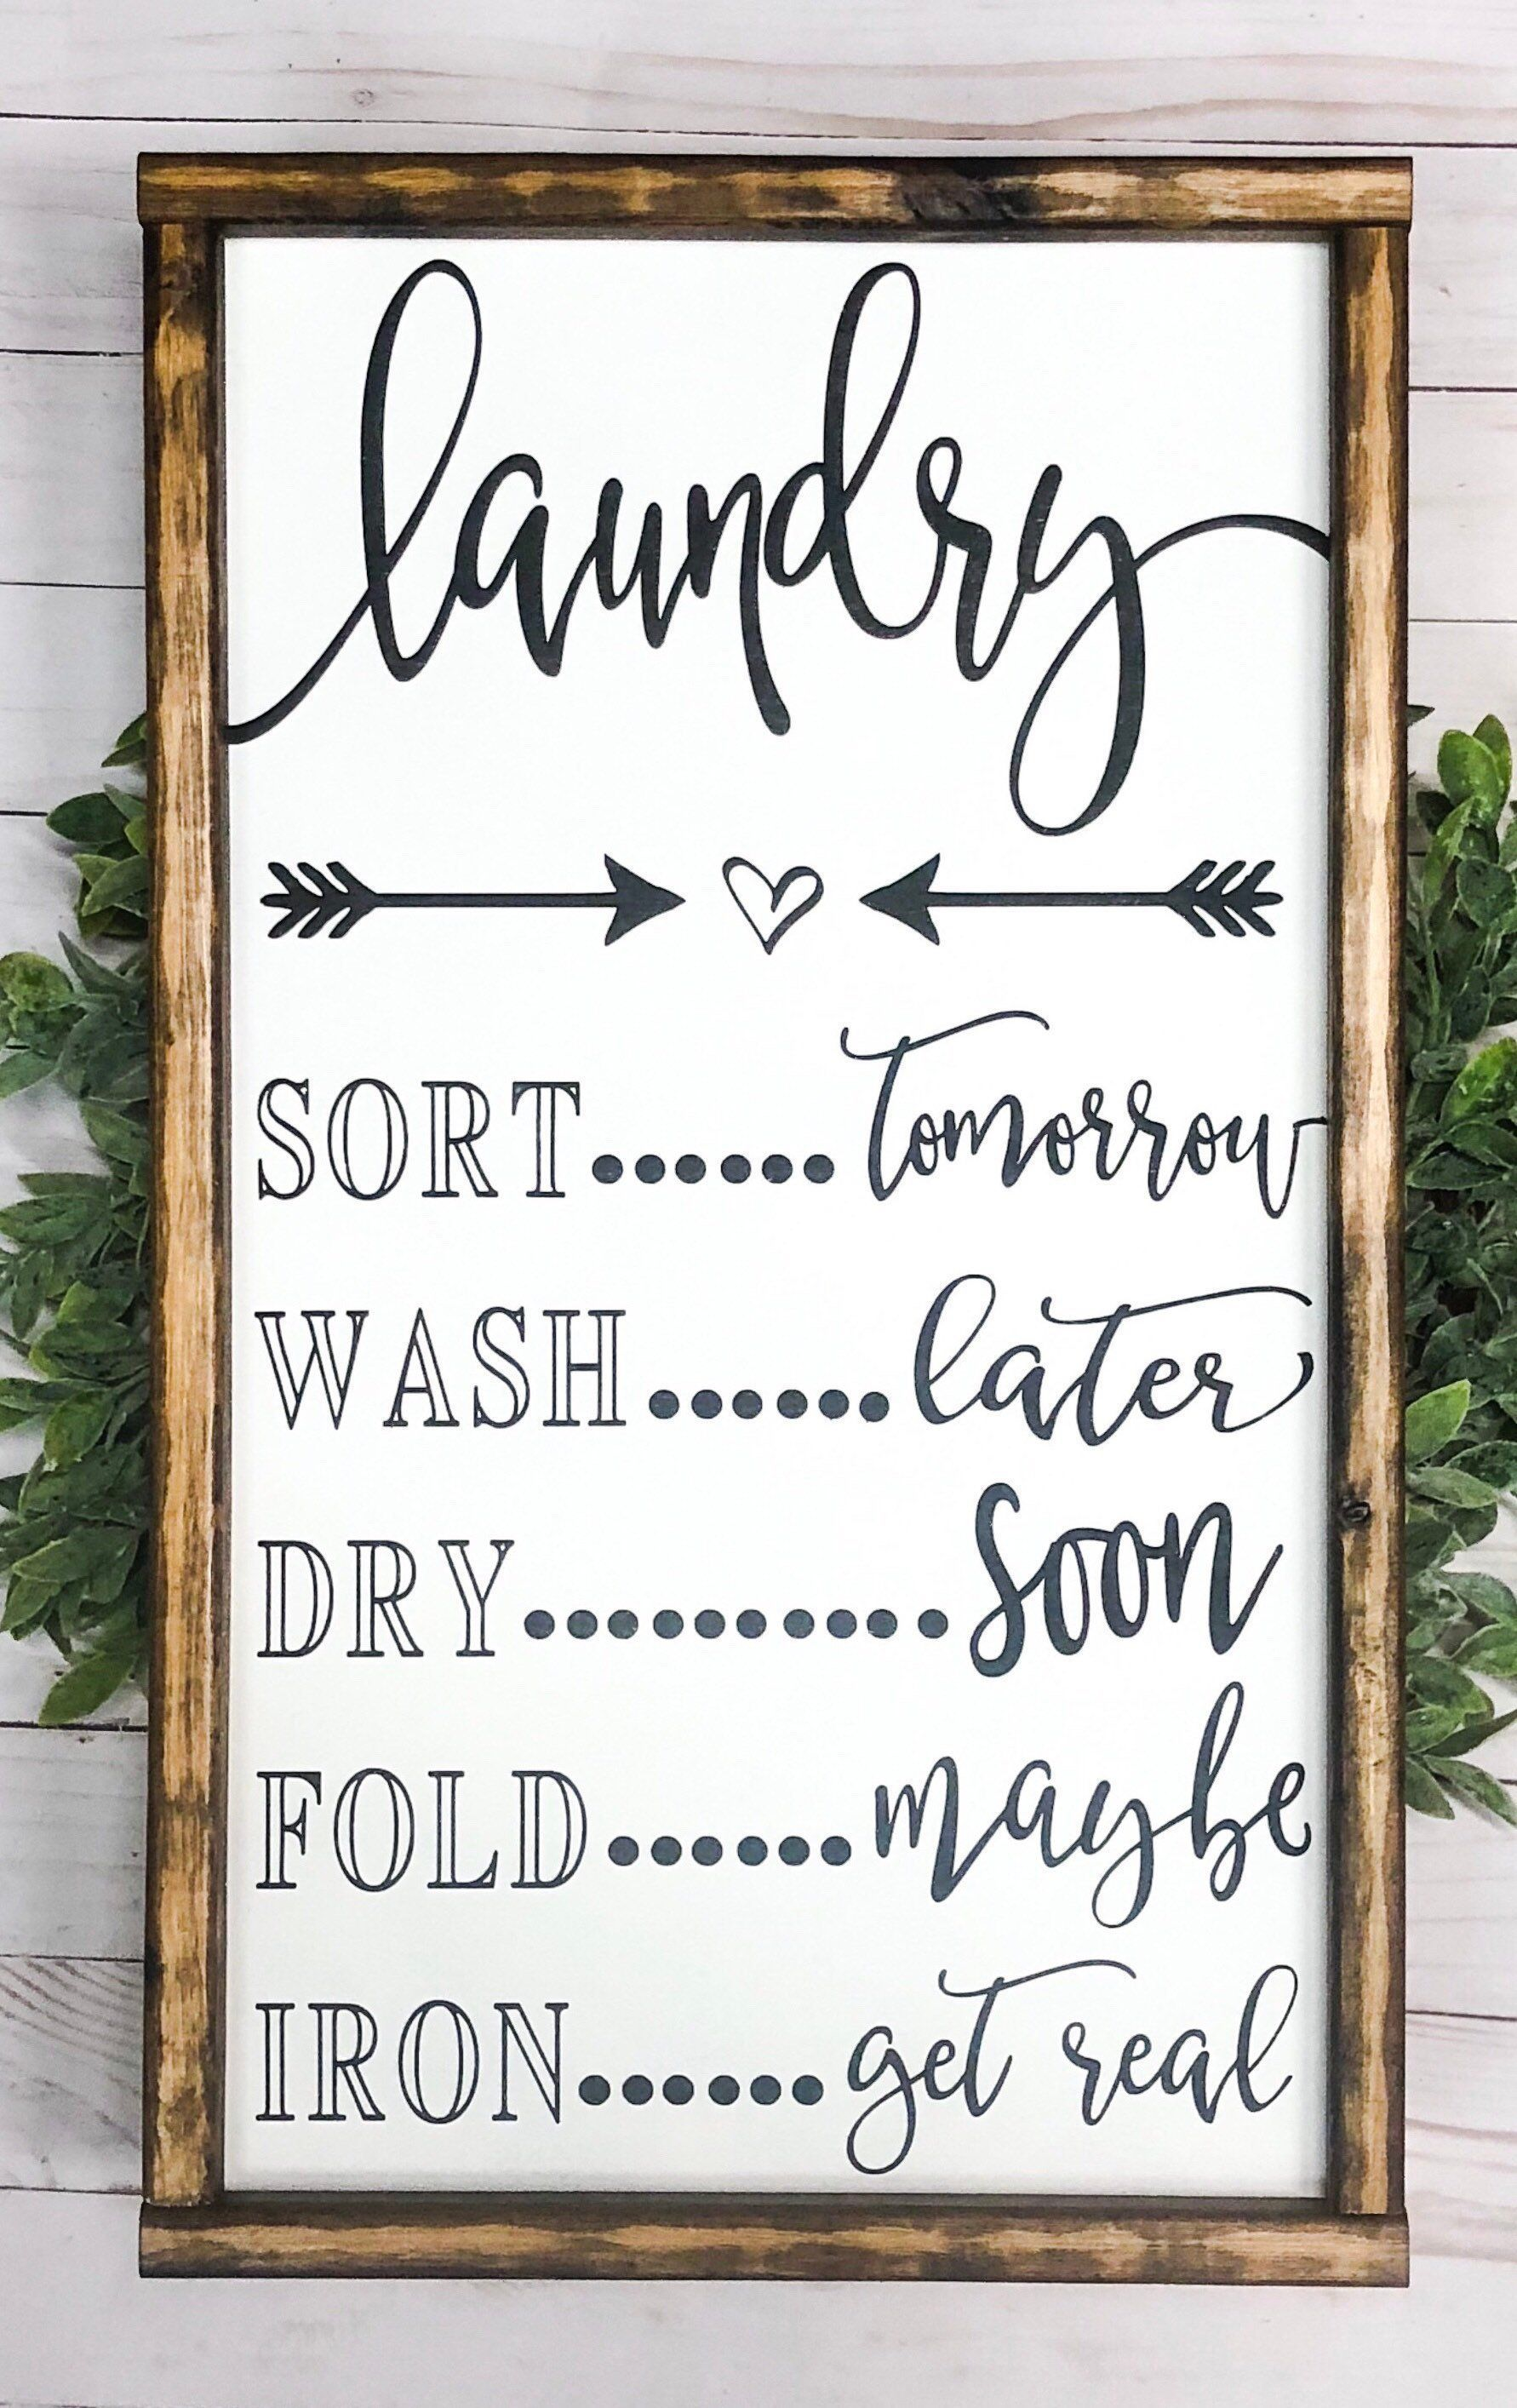 Signs With Quotes  Farmhouse Decor  Laundry Room Decor  Farmhouse Signs  Funny Signs  Signs With Quotes  Farmhouse Decor  Laundry Room Decor  Farmhouse Signs  Funny Signs...